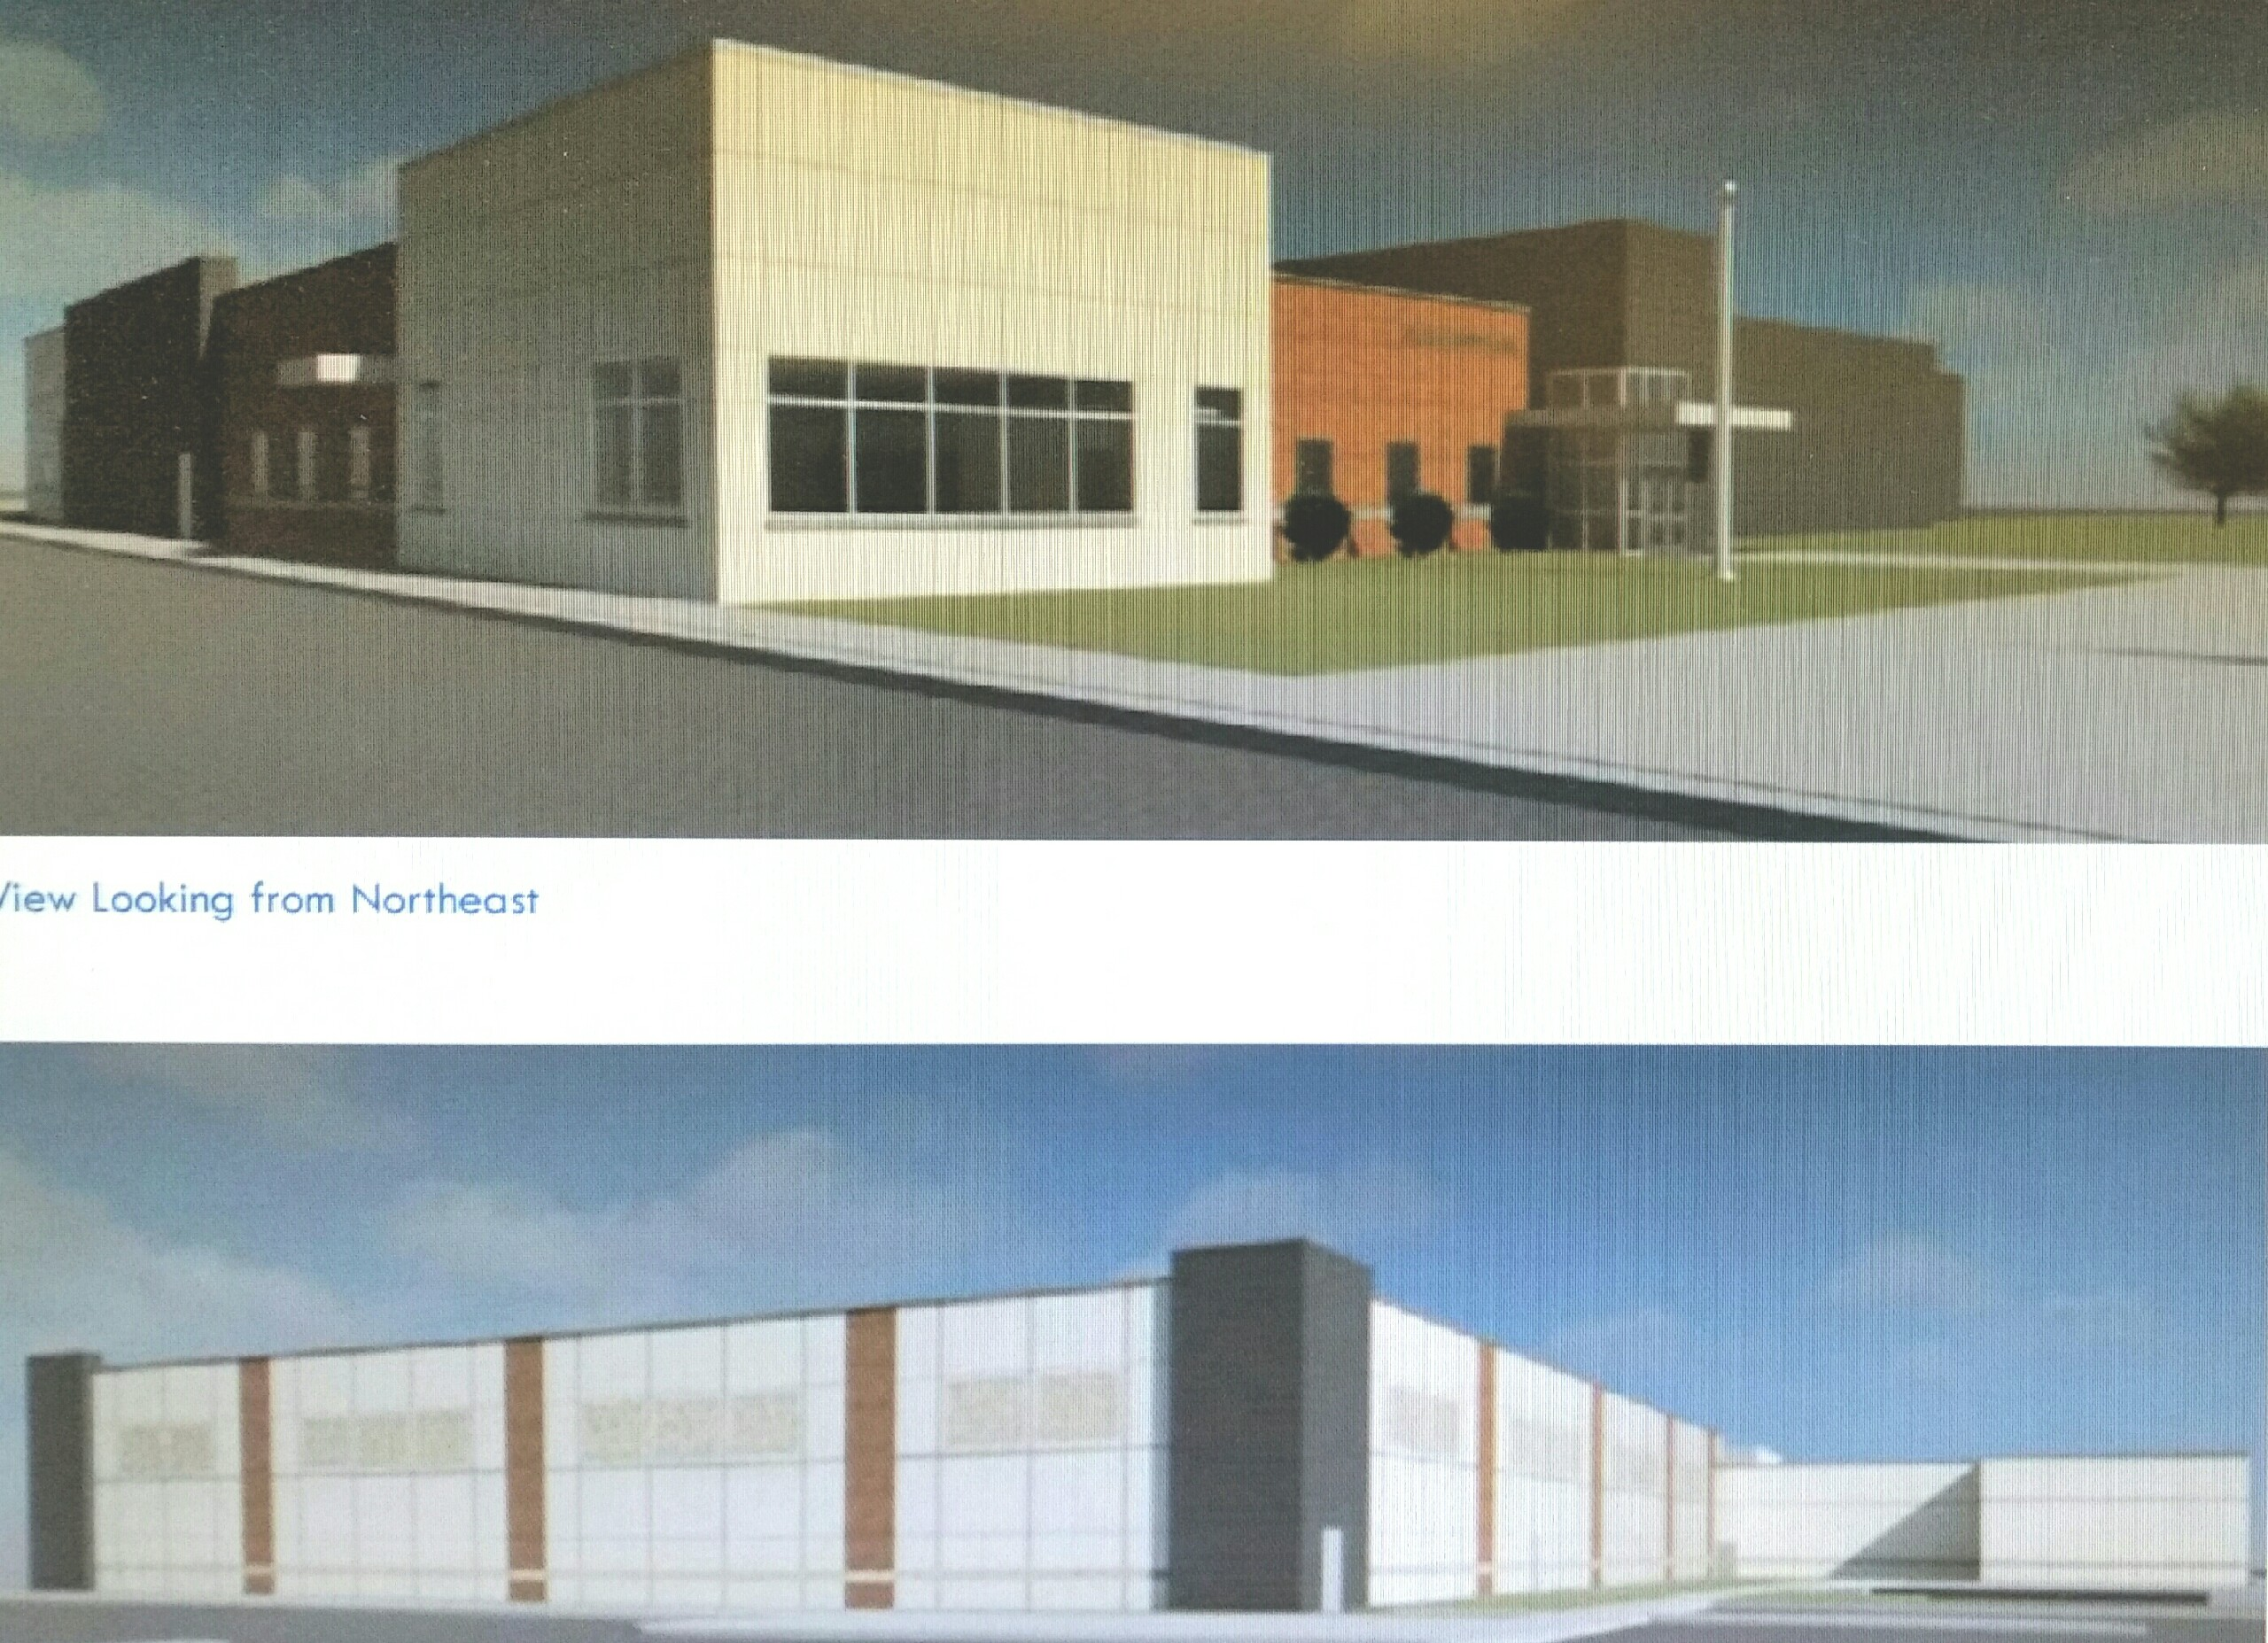 Architect unveils Clay County jail plans | News | The Mighty